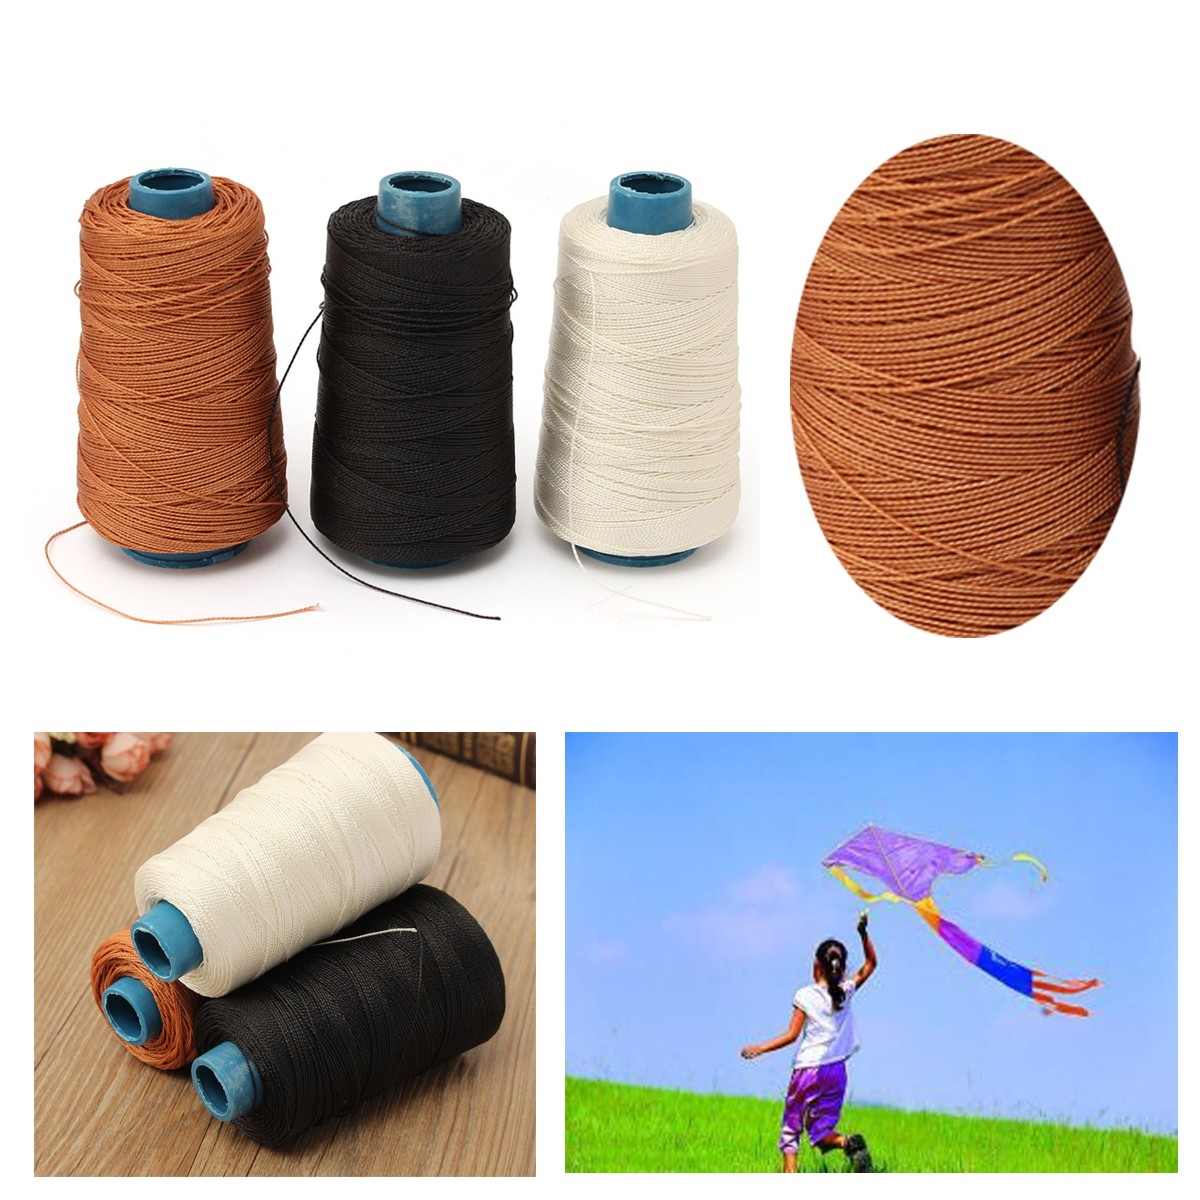 250-300M Kite Line Nylon Rope Kite String Wax Line Seam Shoe Sole Line Lead Line Tire Yarn Hair